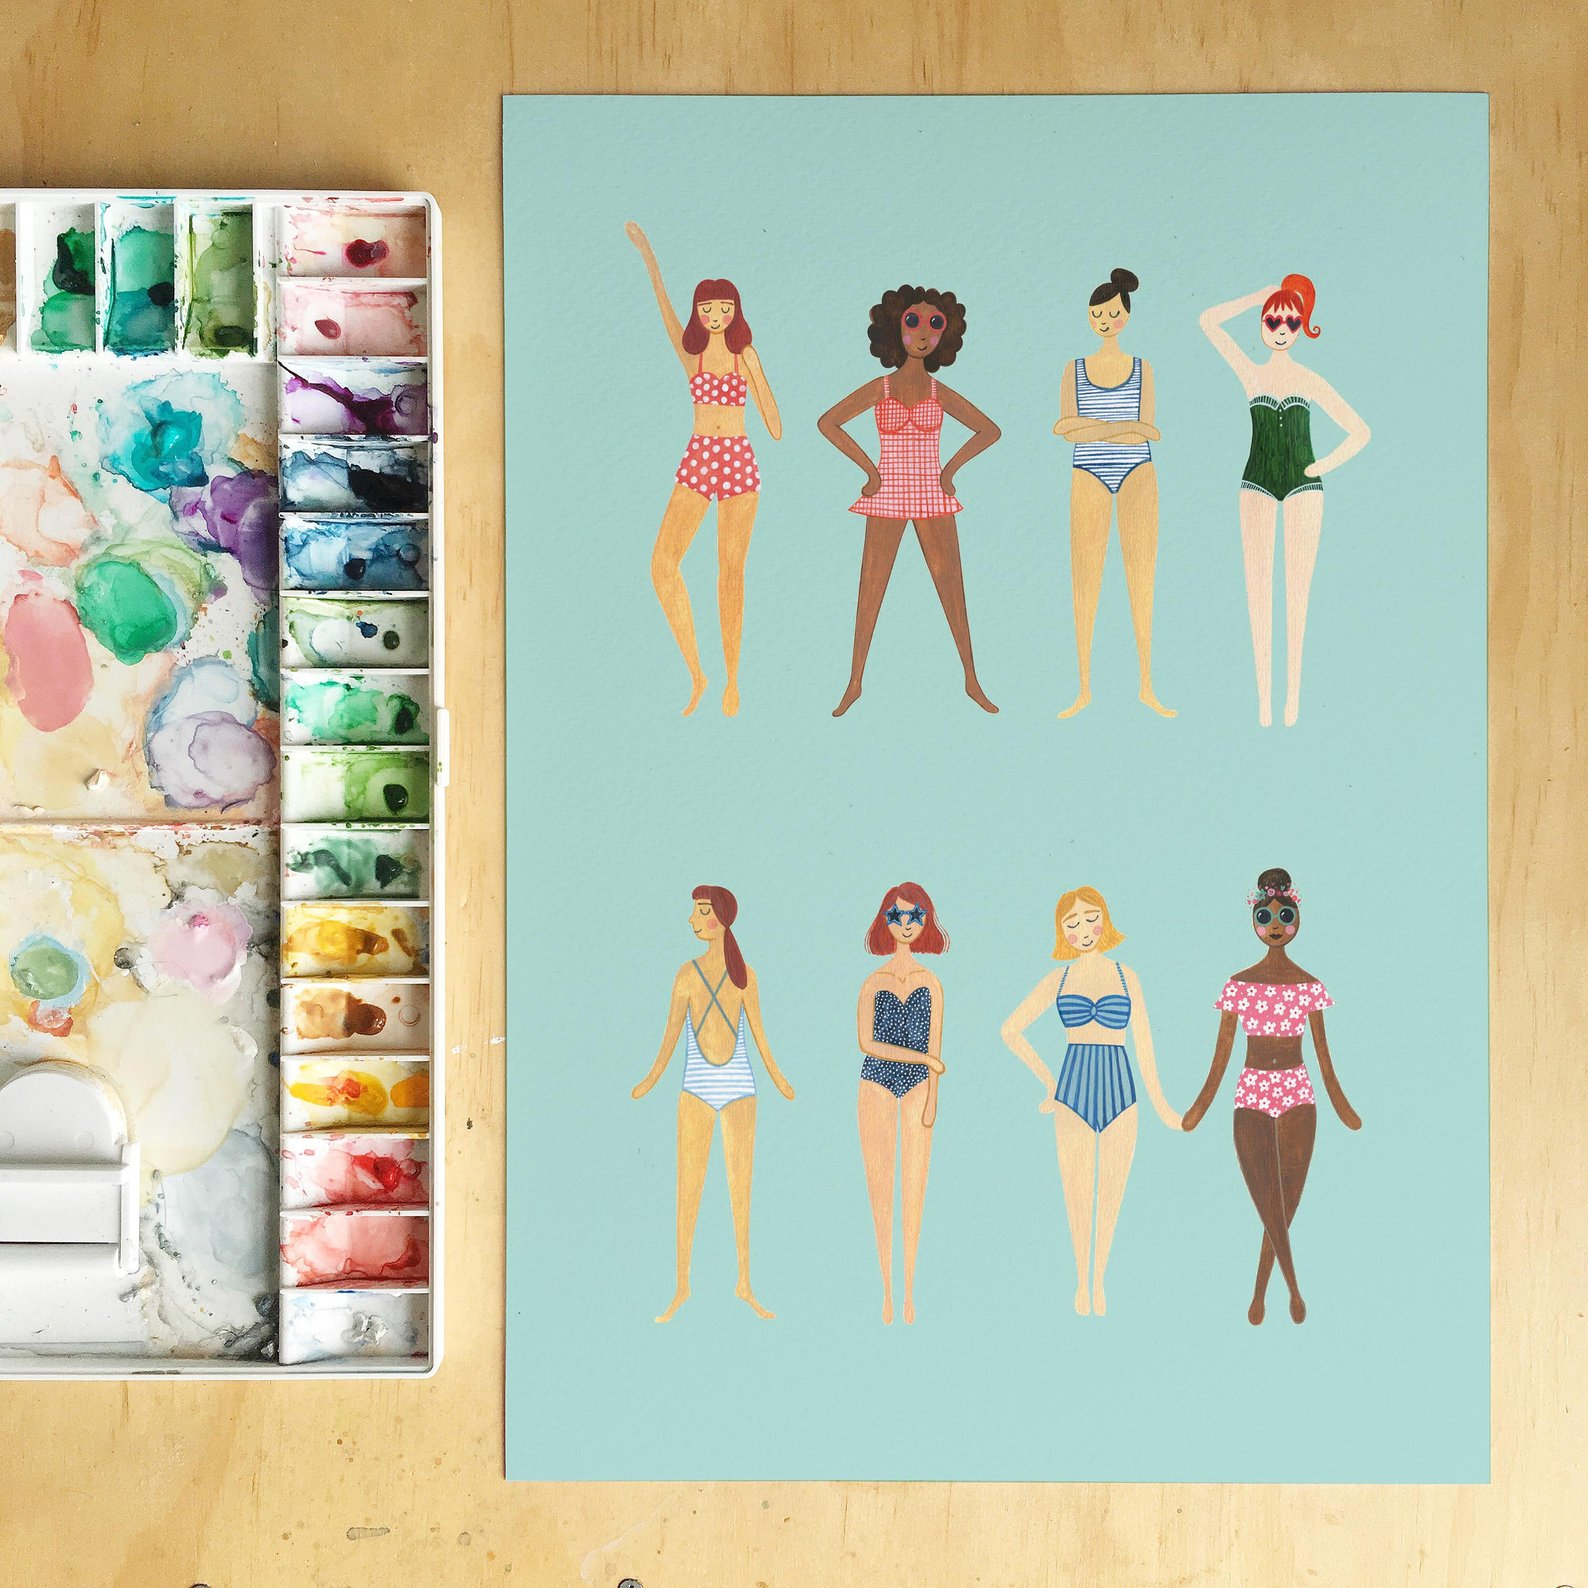 The Swimmers Art Print By Andrina Manon